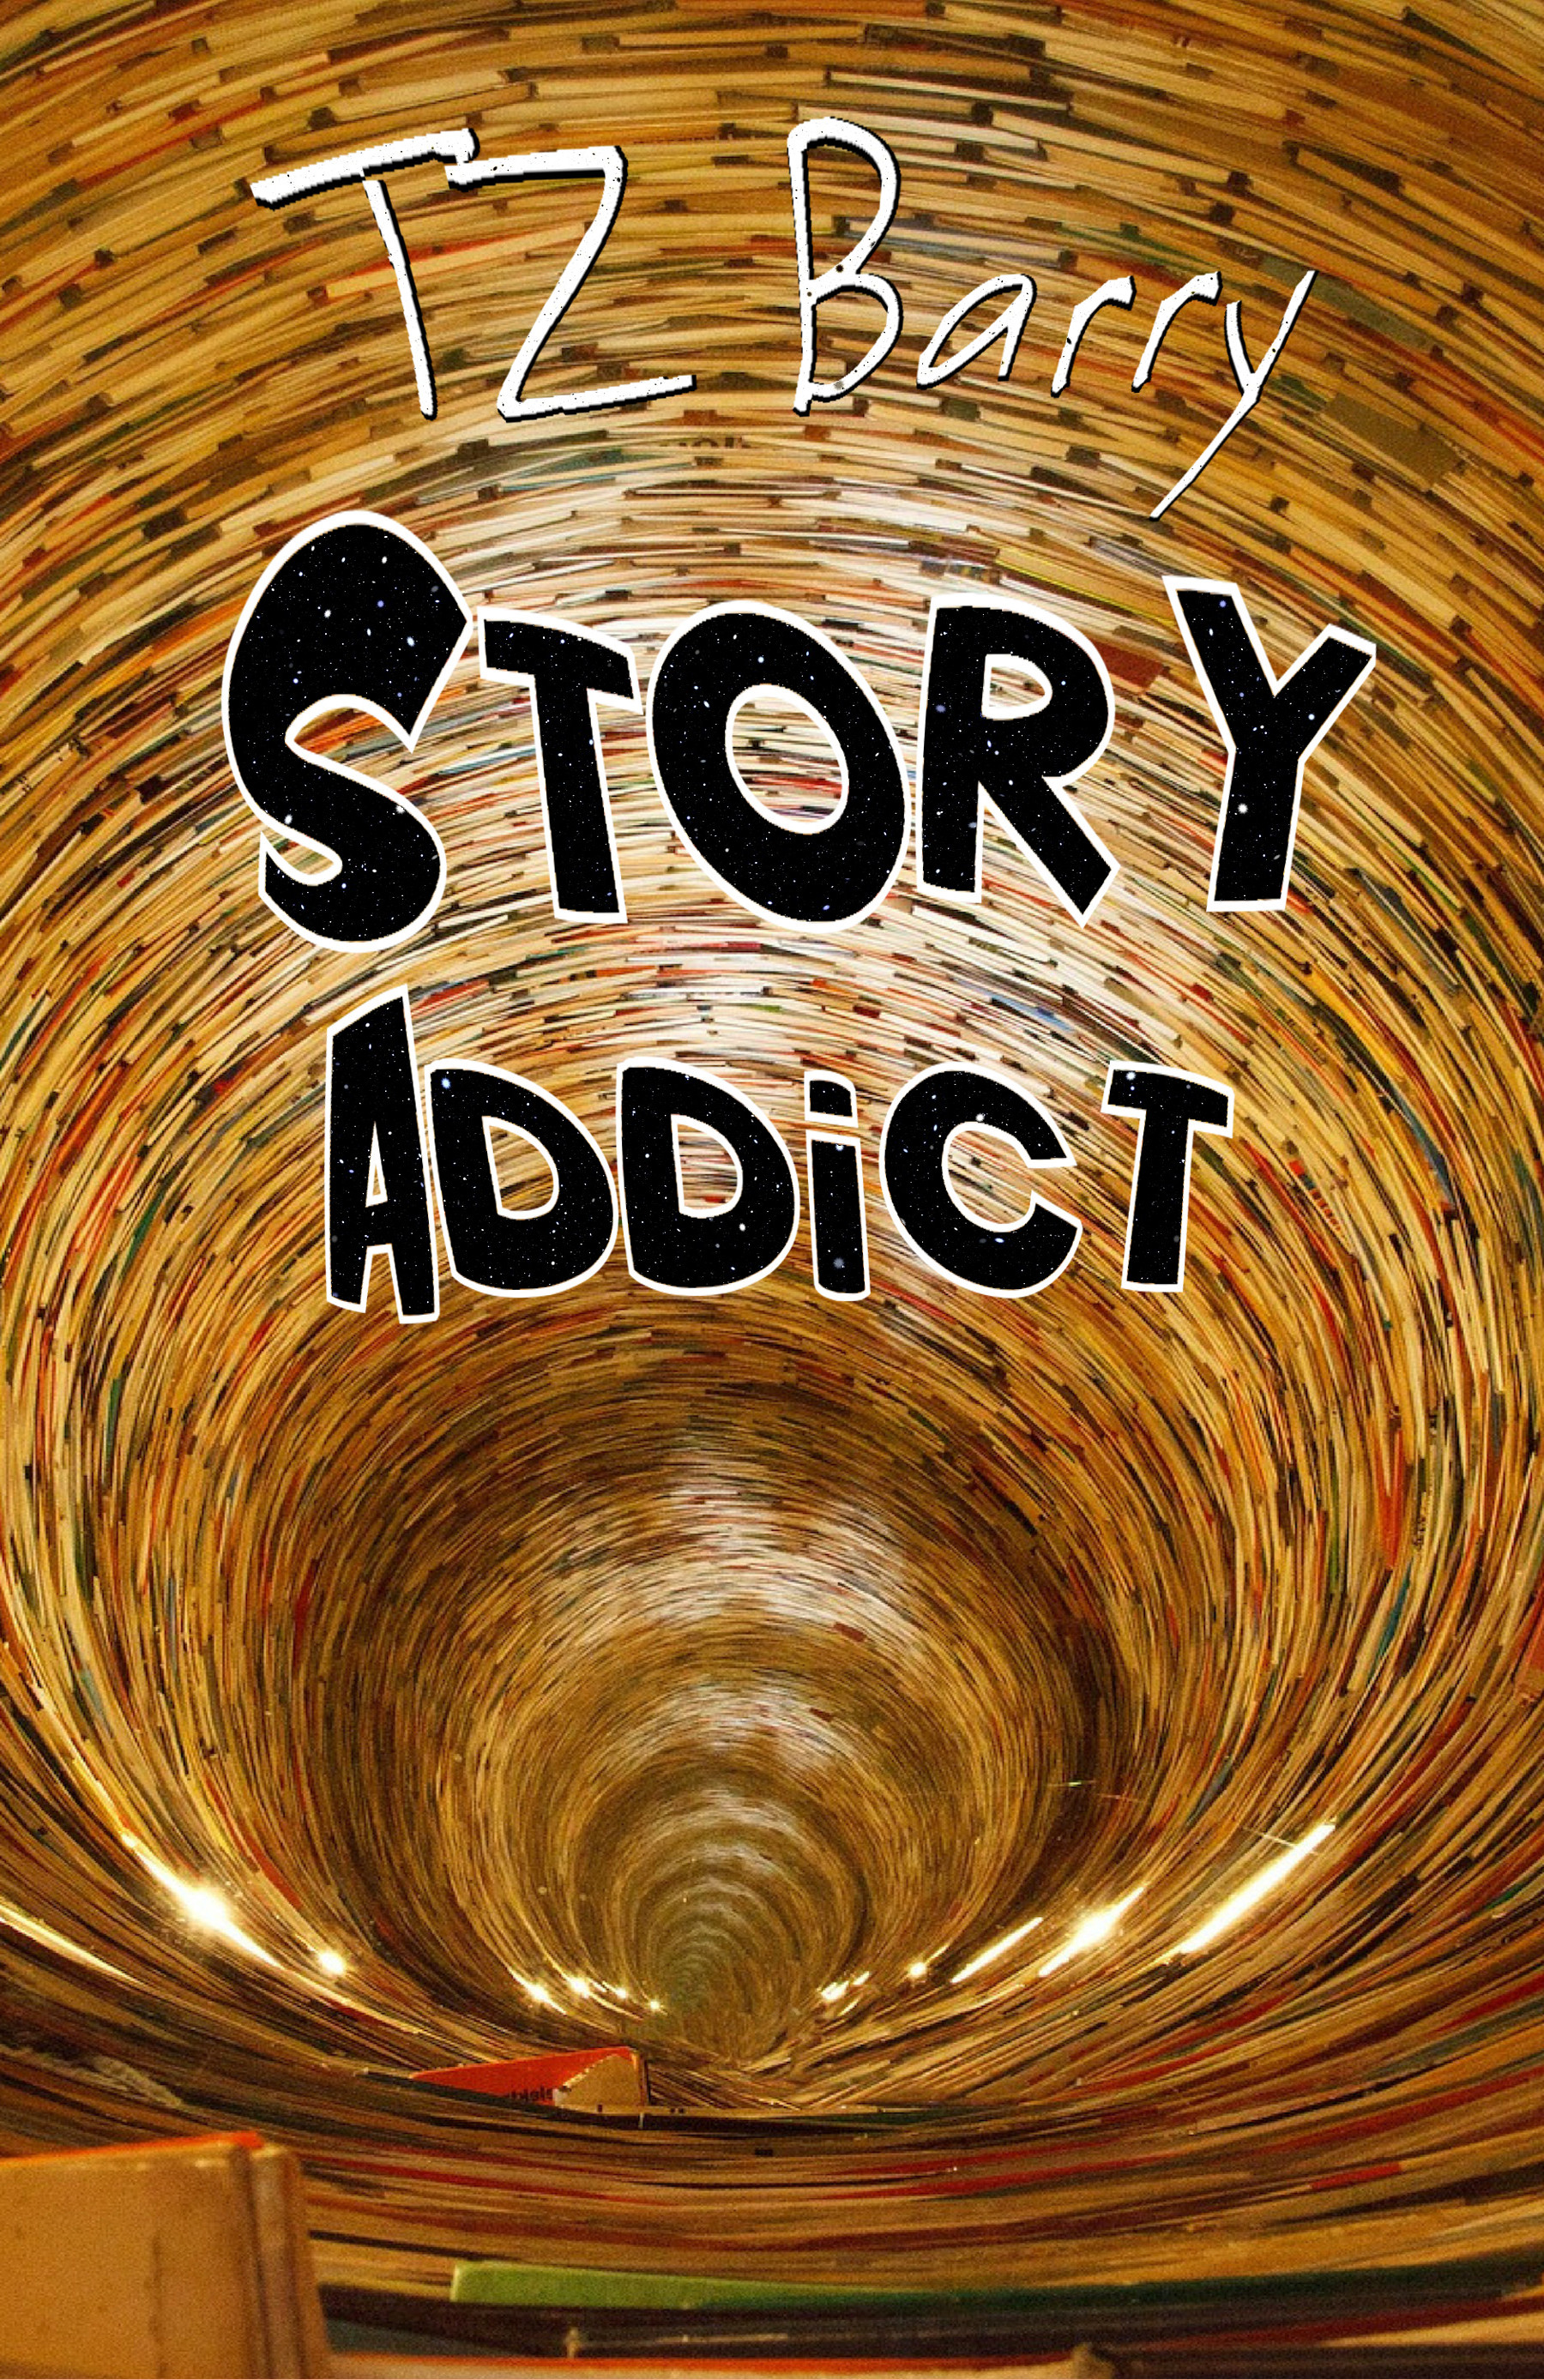 StoryAddict-TZBarry-ebook1